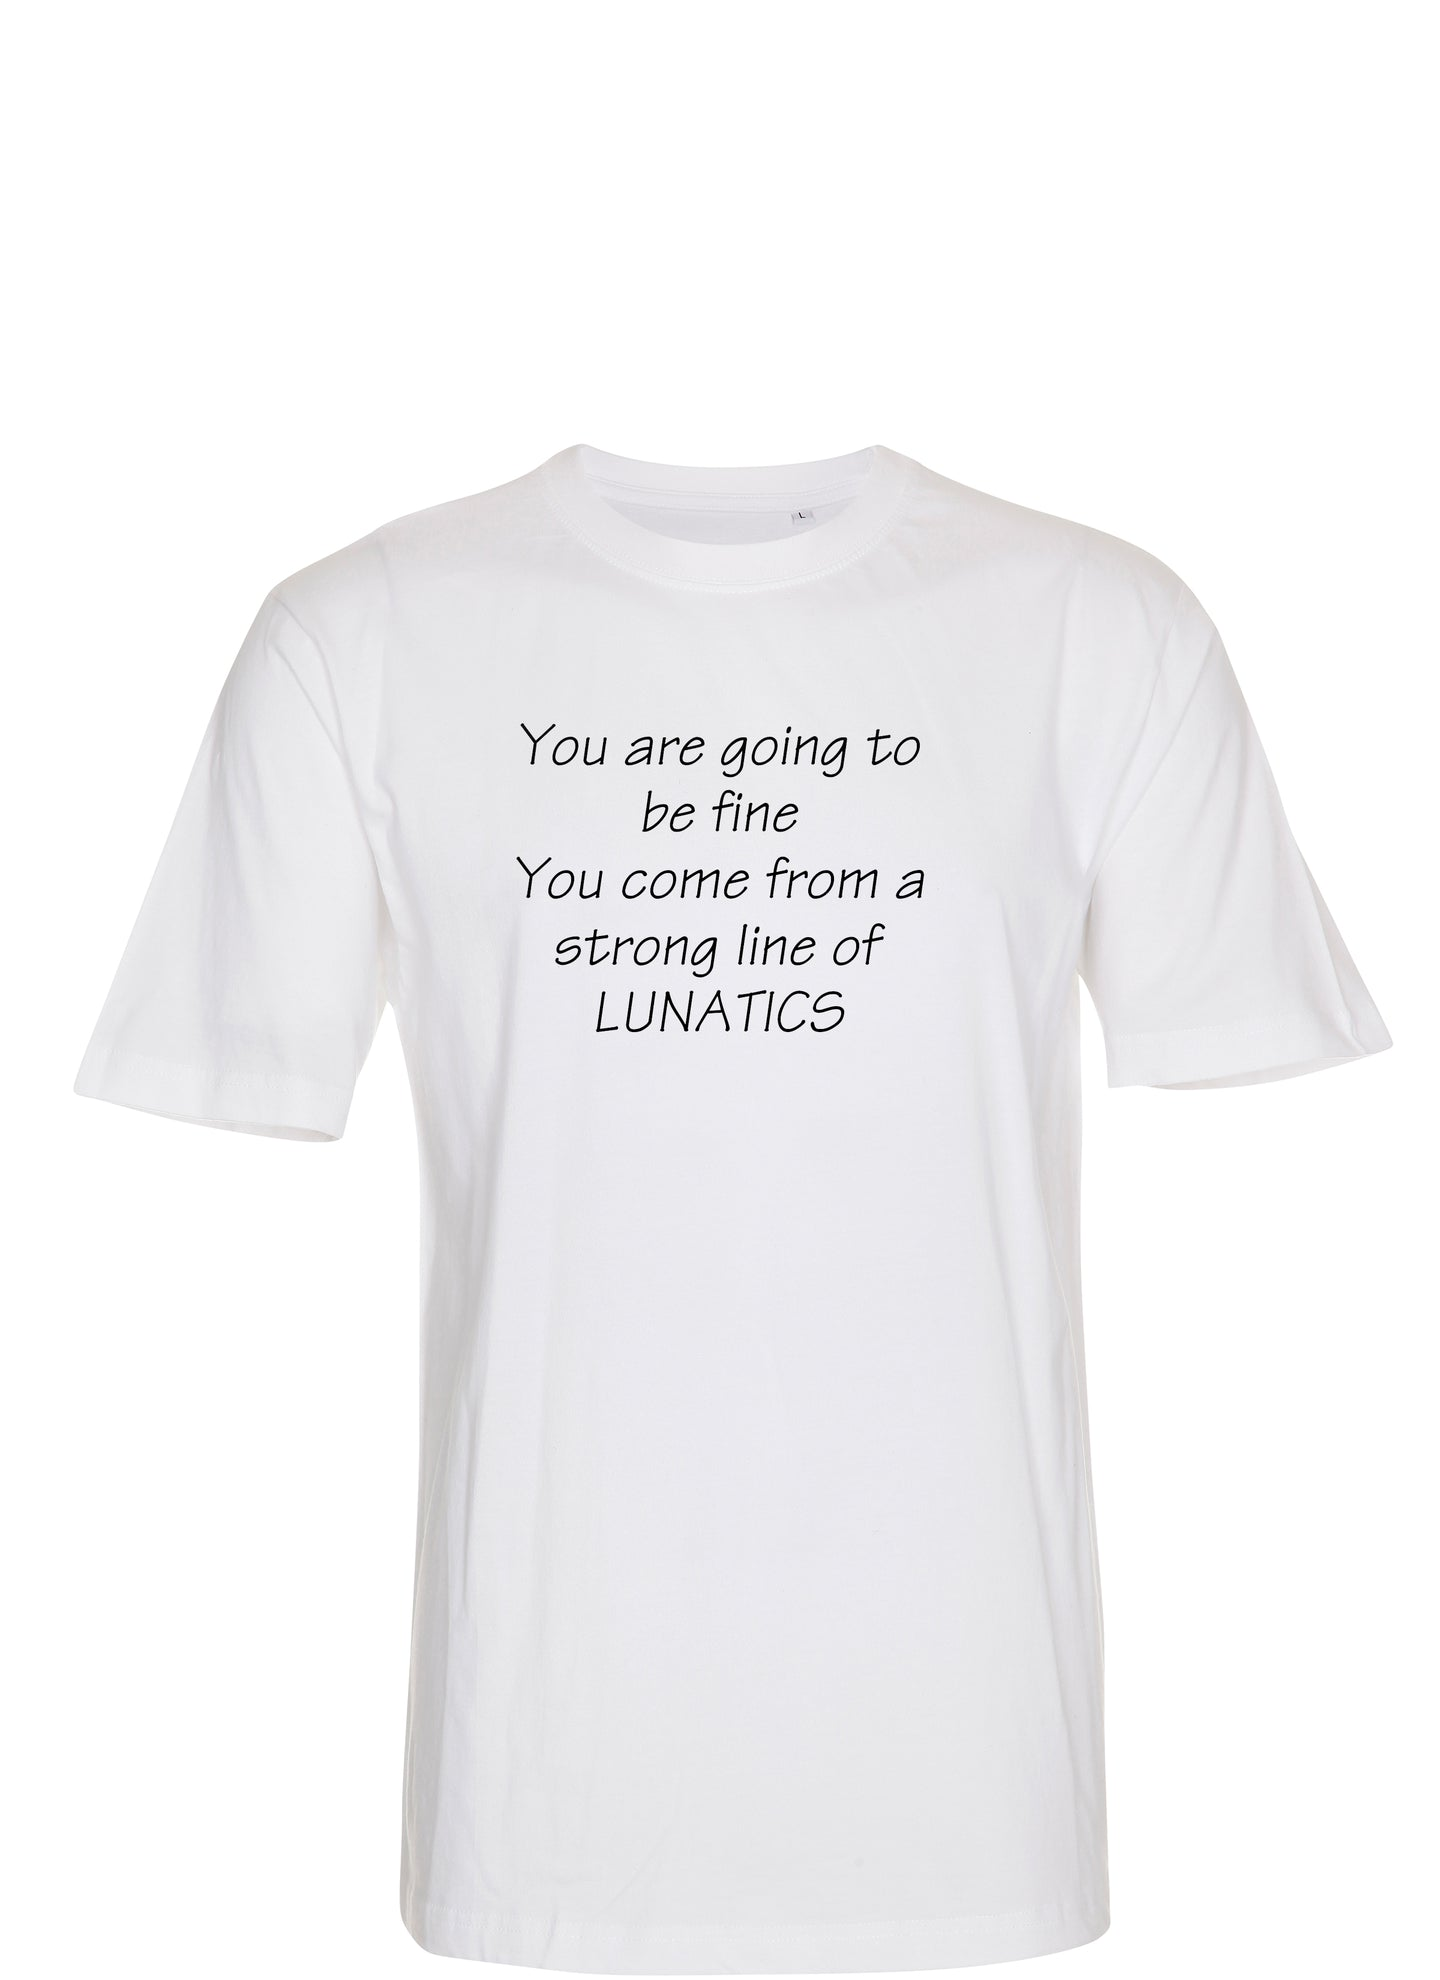 Your going to be børne t-shirt